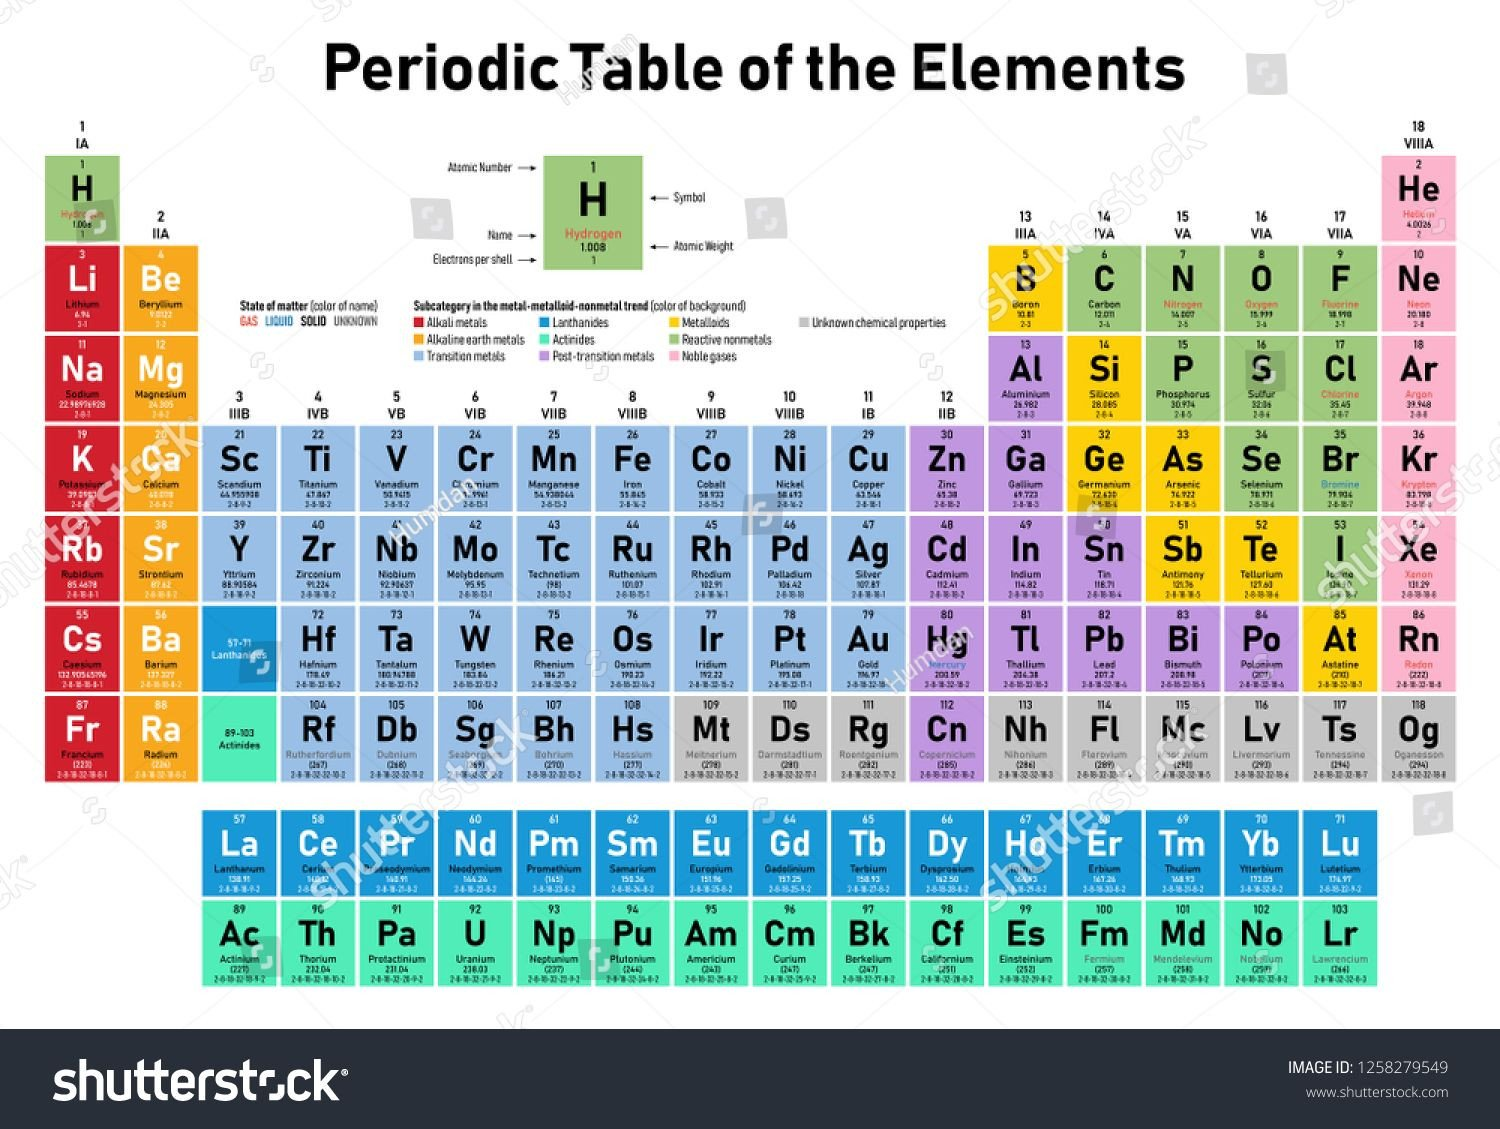 Mendeleev Periodic Table Worksheet Colorful Periodic Table Of the Elements Shows atomic